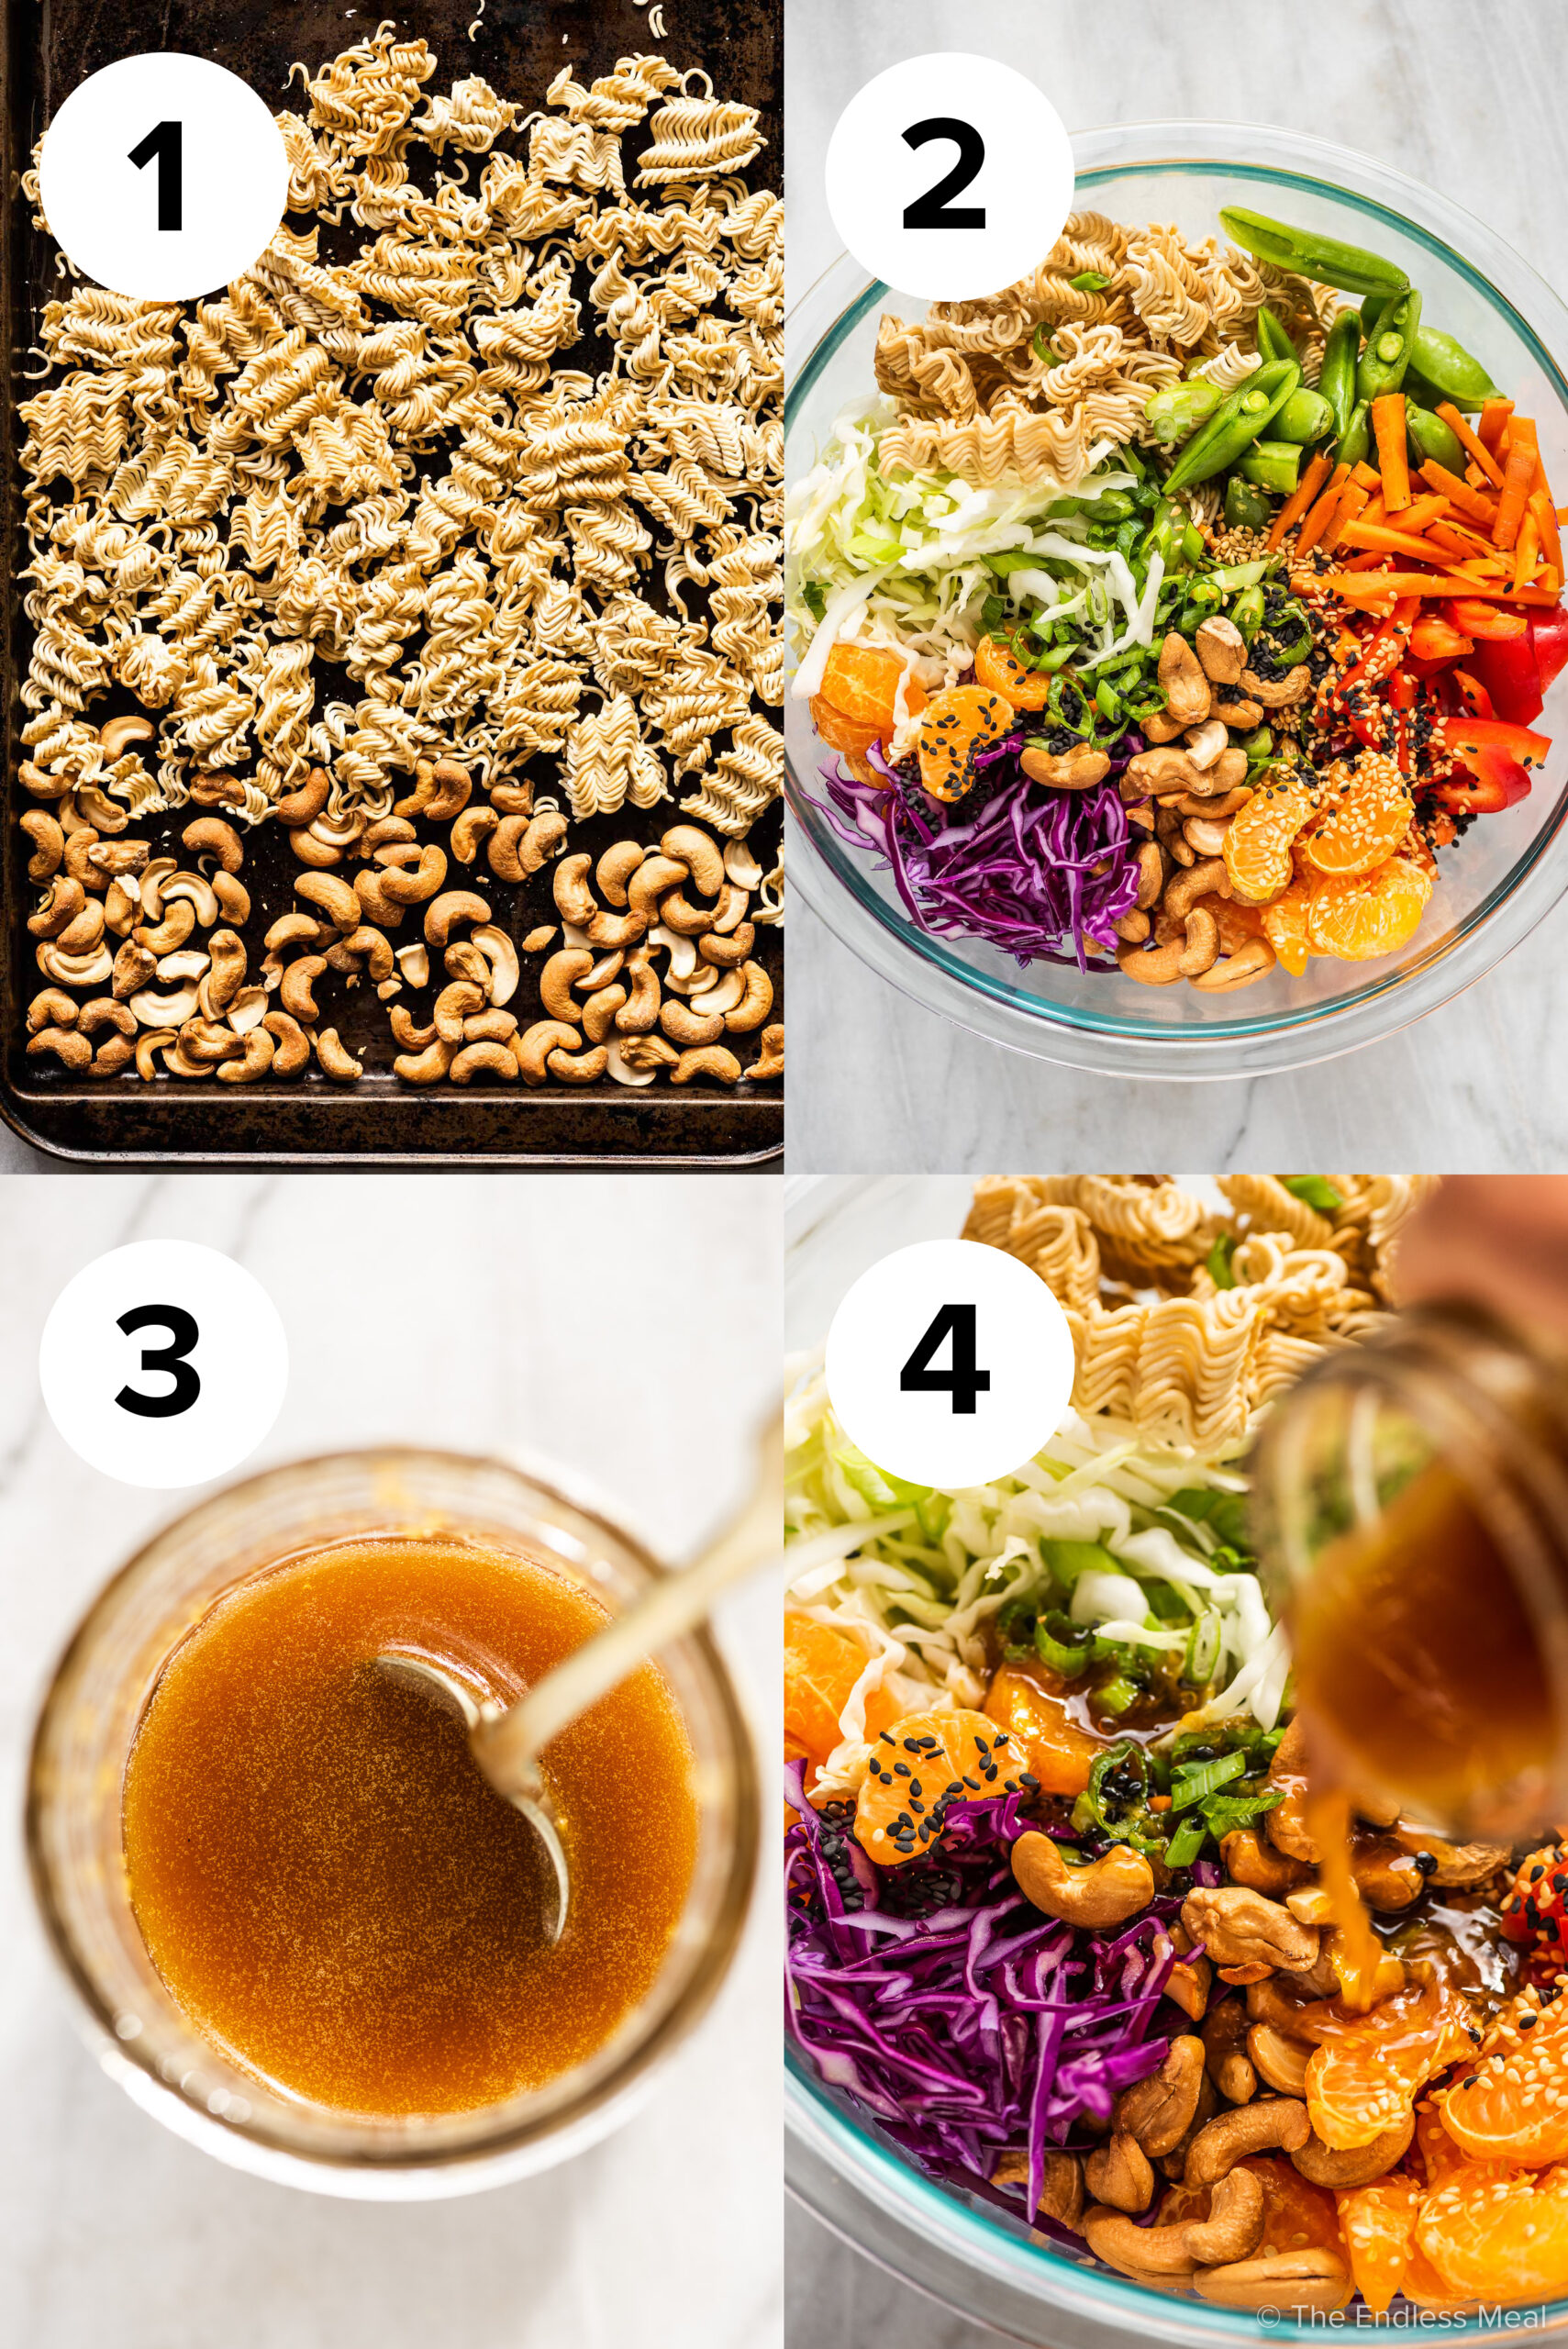 4 pictures showing how to make ramen noodle salad.